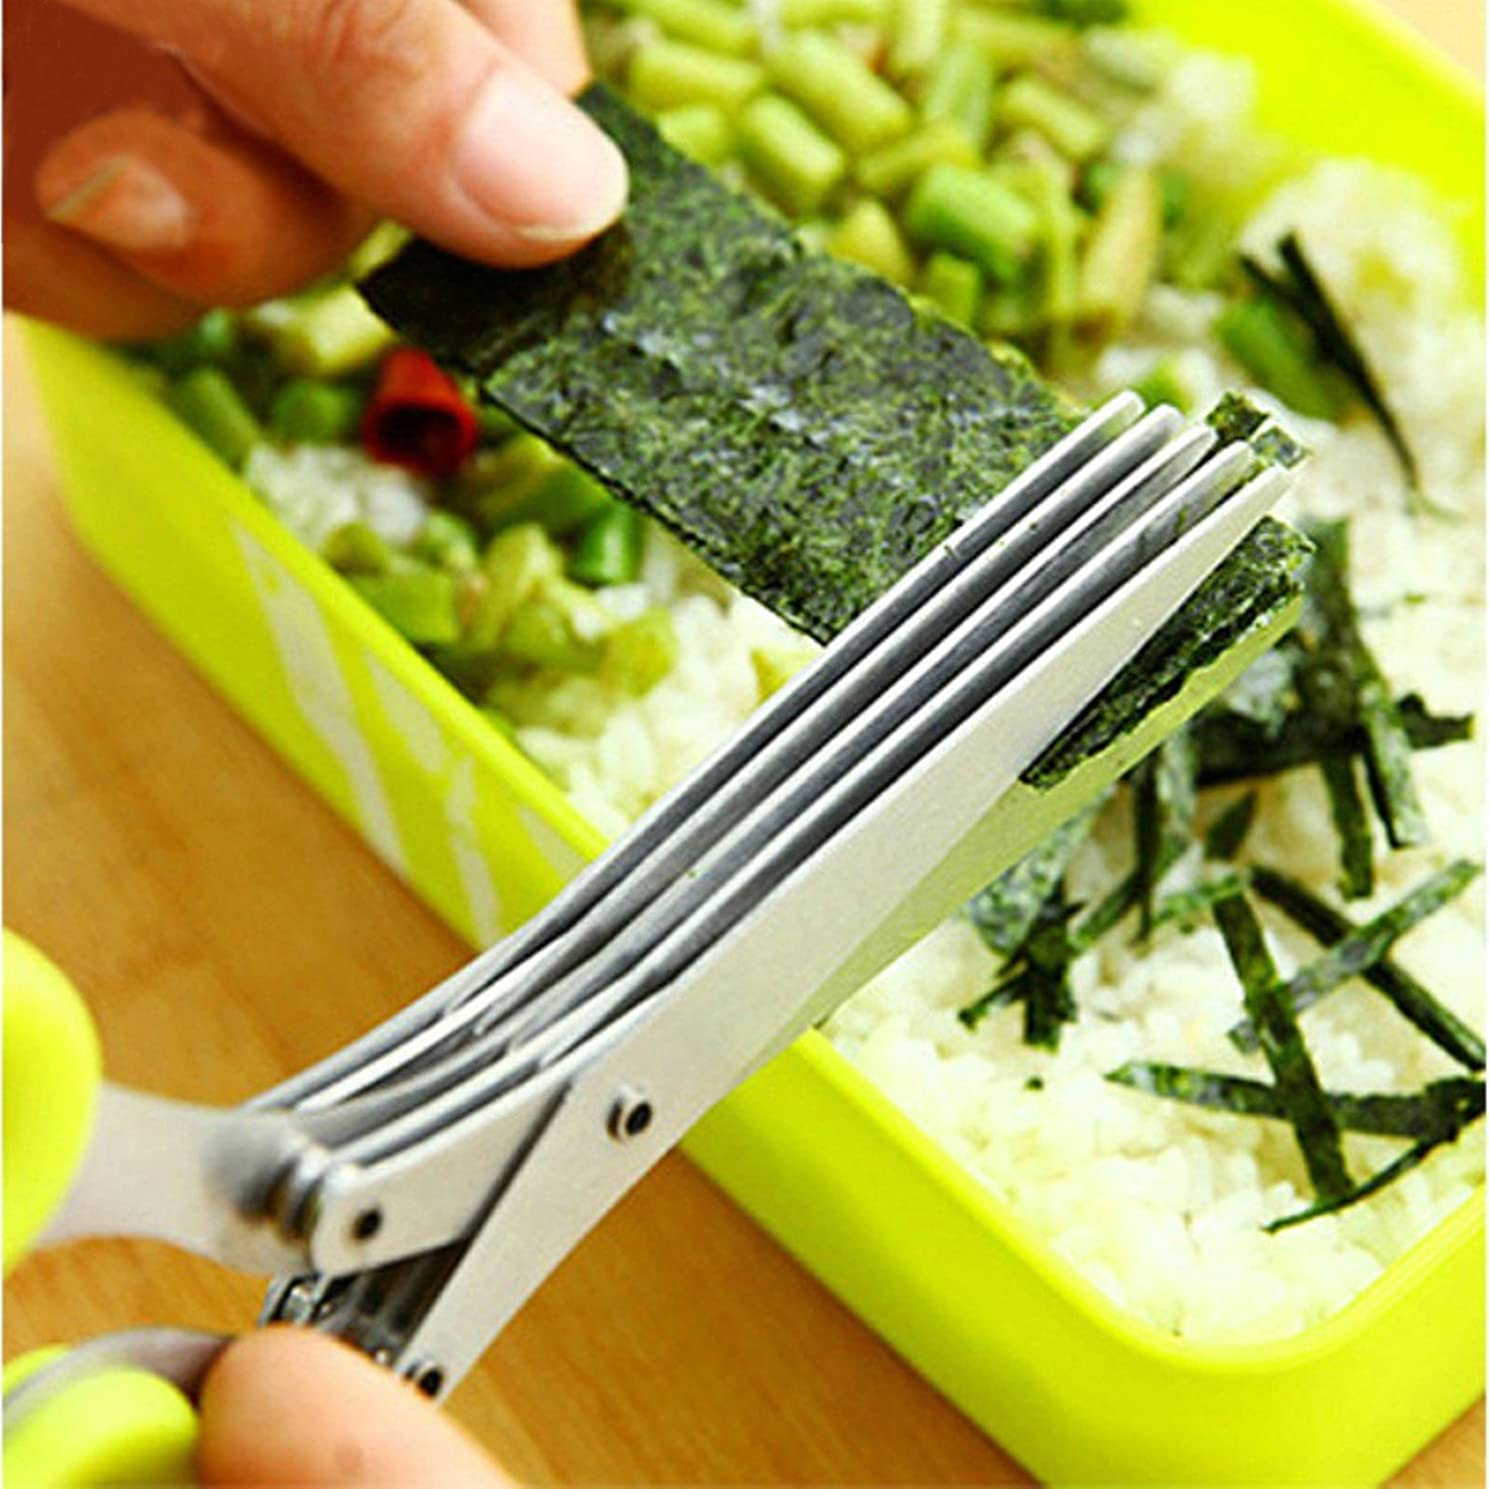 Multi-functional Stainless Steel Kitchen Knives 5 Layers Scissors Sushi Shredded Scallion Cut Herb Spices Scissors Cooking Tools Kangkang (Blue)